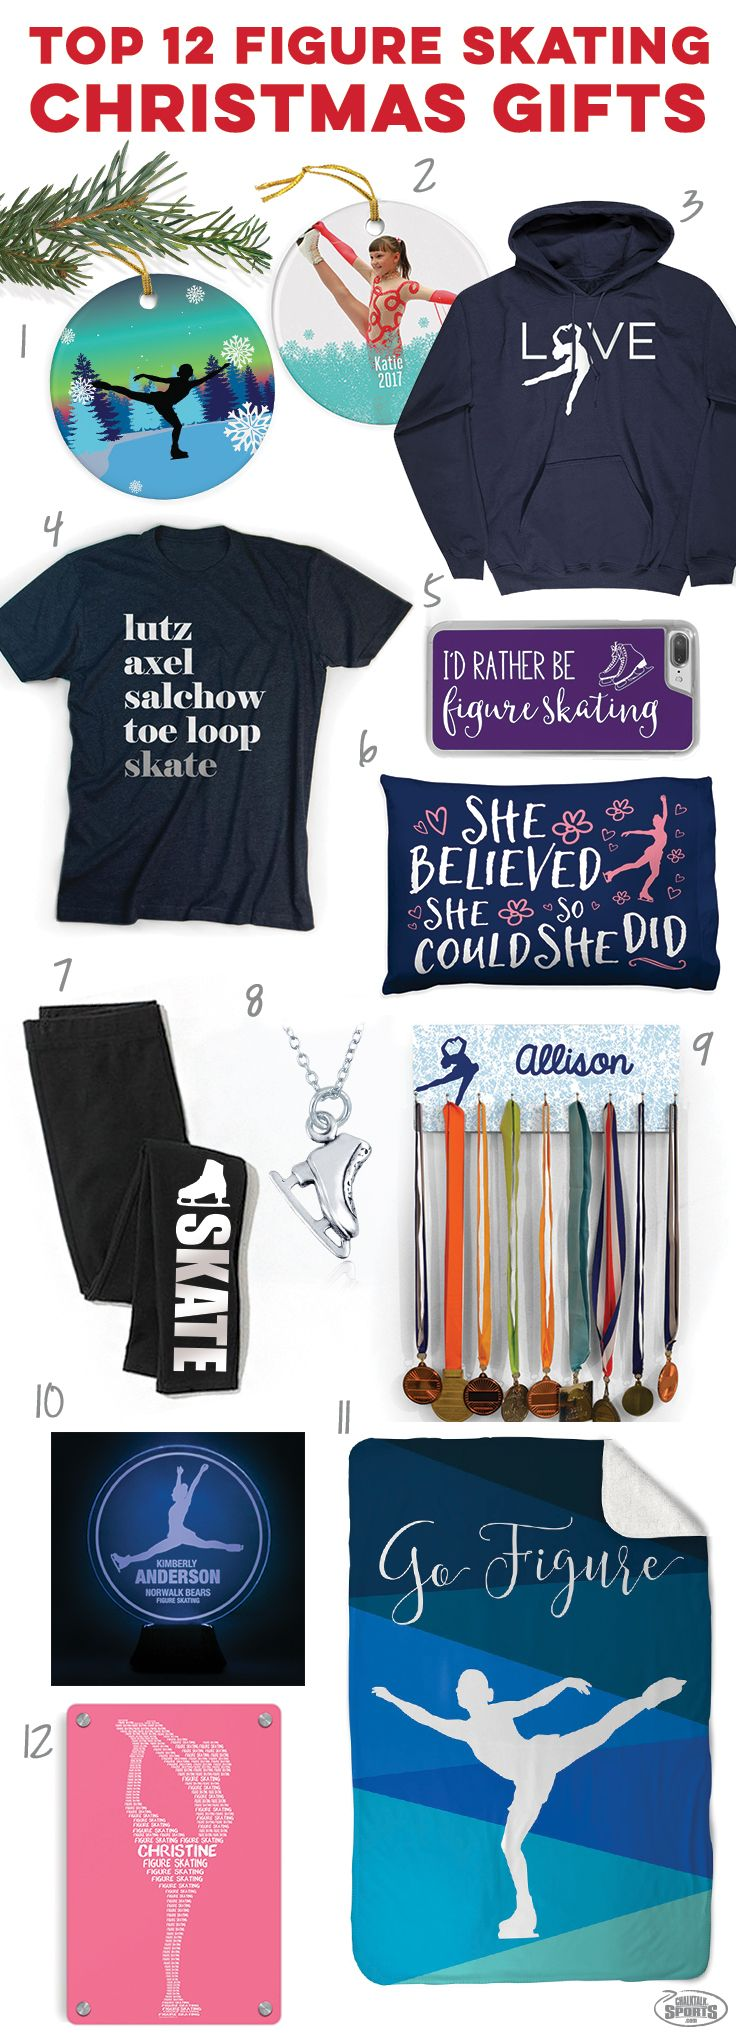 21 besten Holiday Gift Ideas/Gift Lists Bilder auf Pinterest